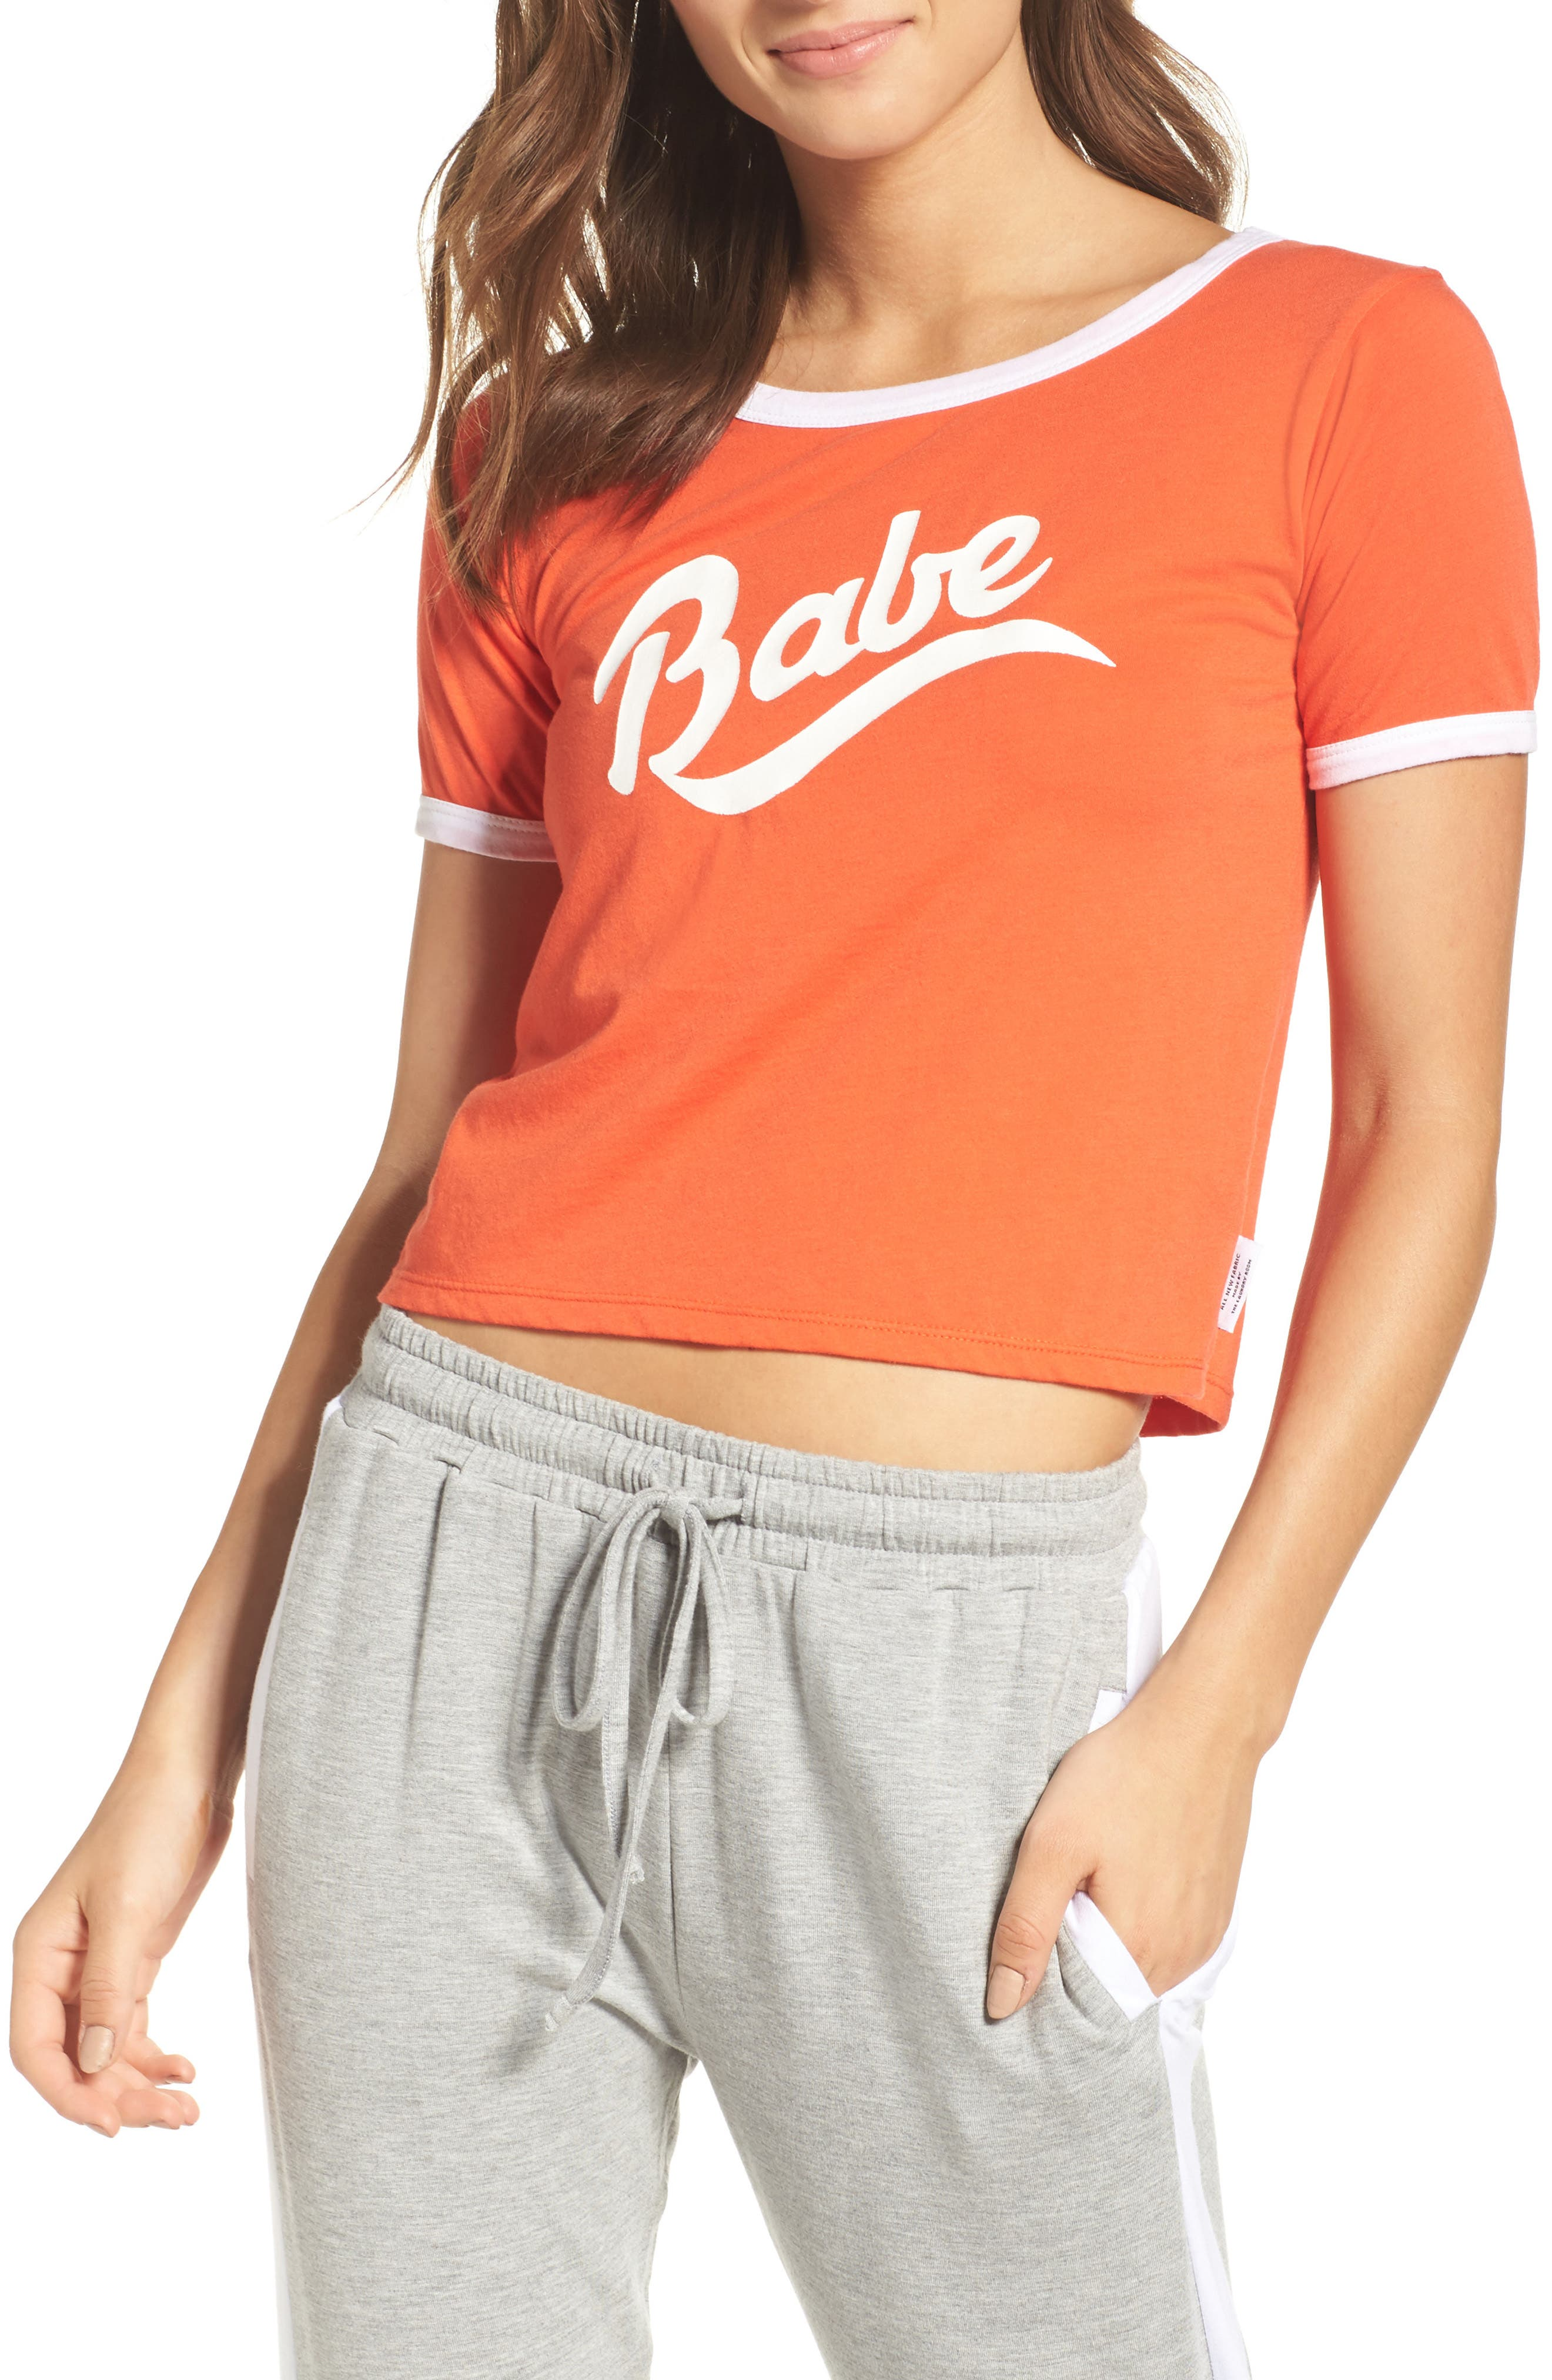 The Laundry Room Babe Tee